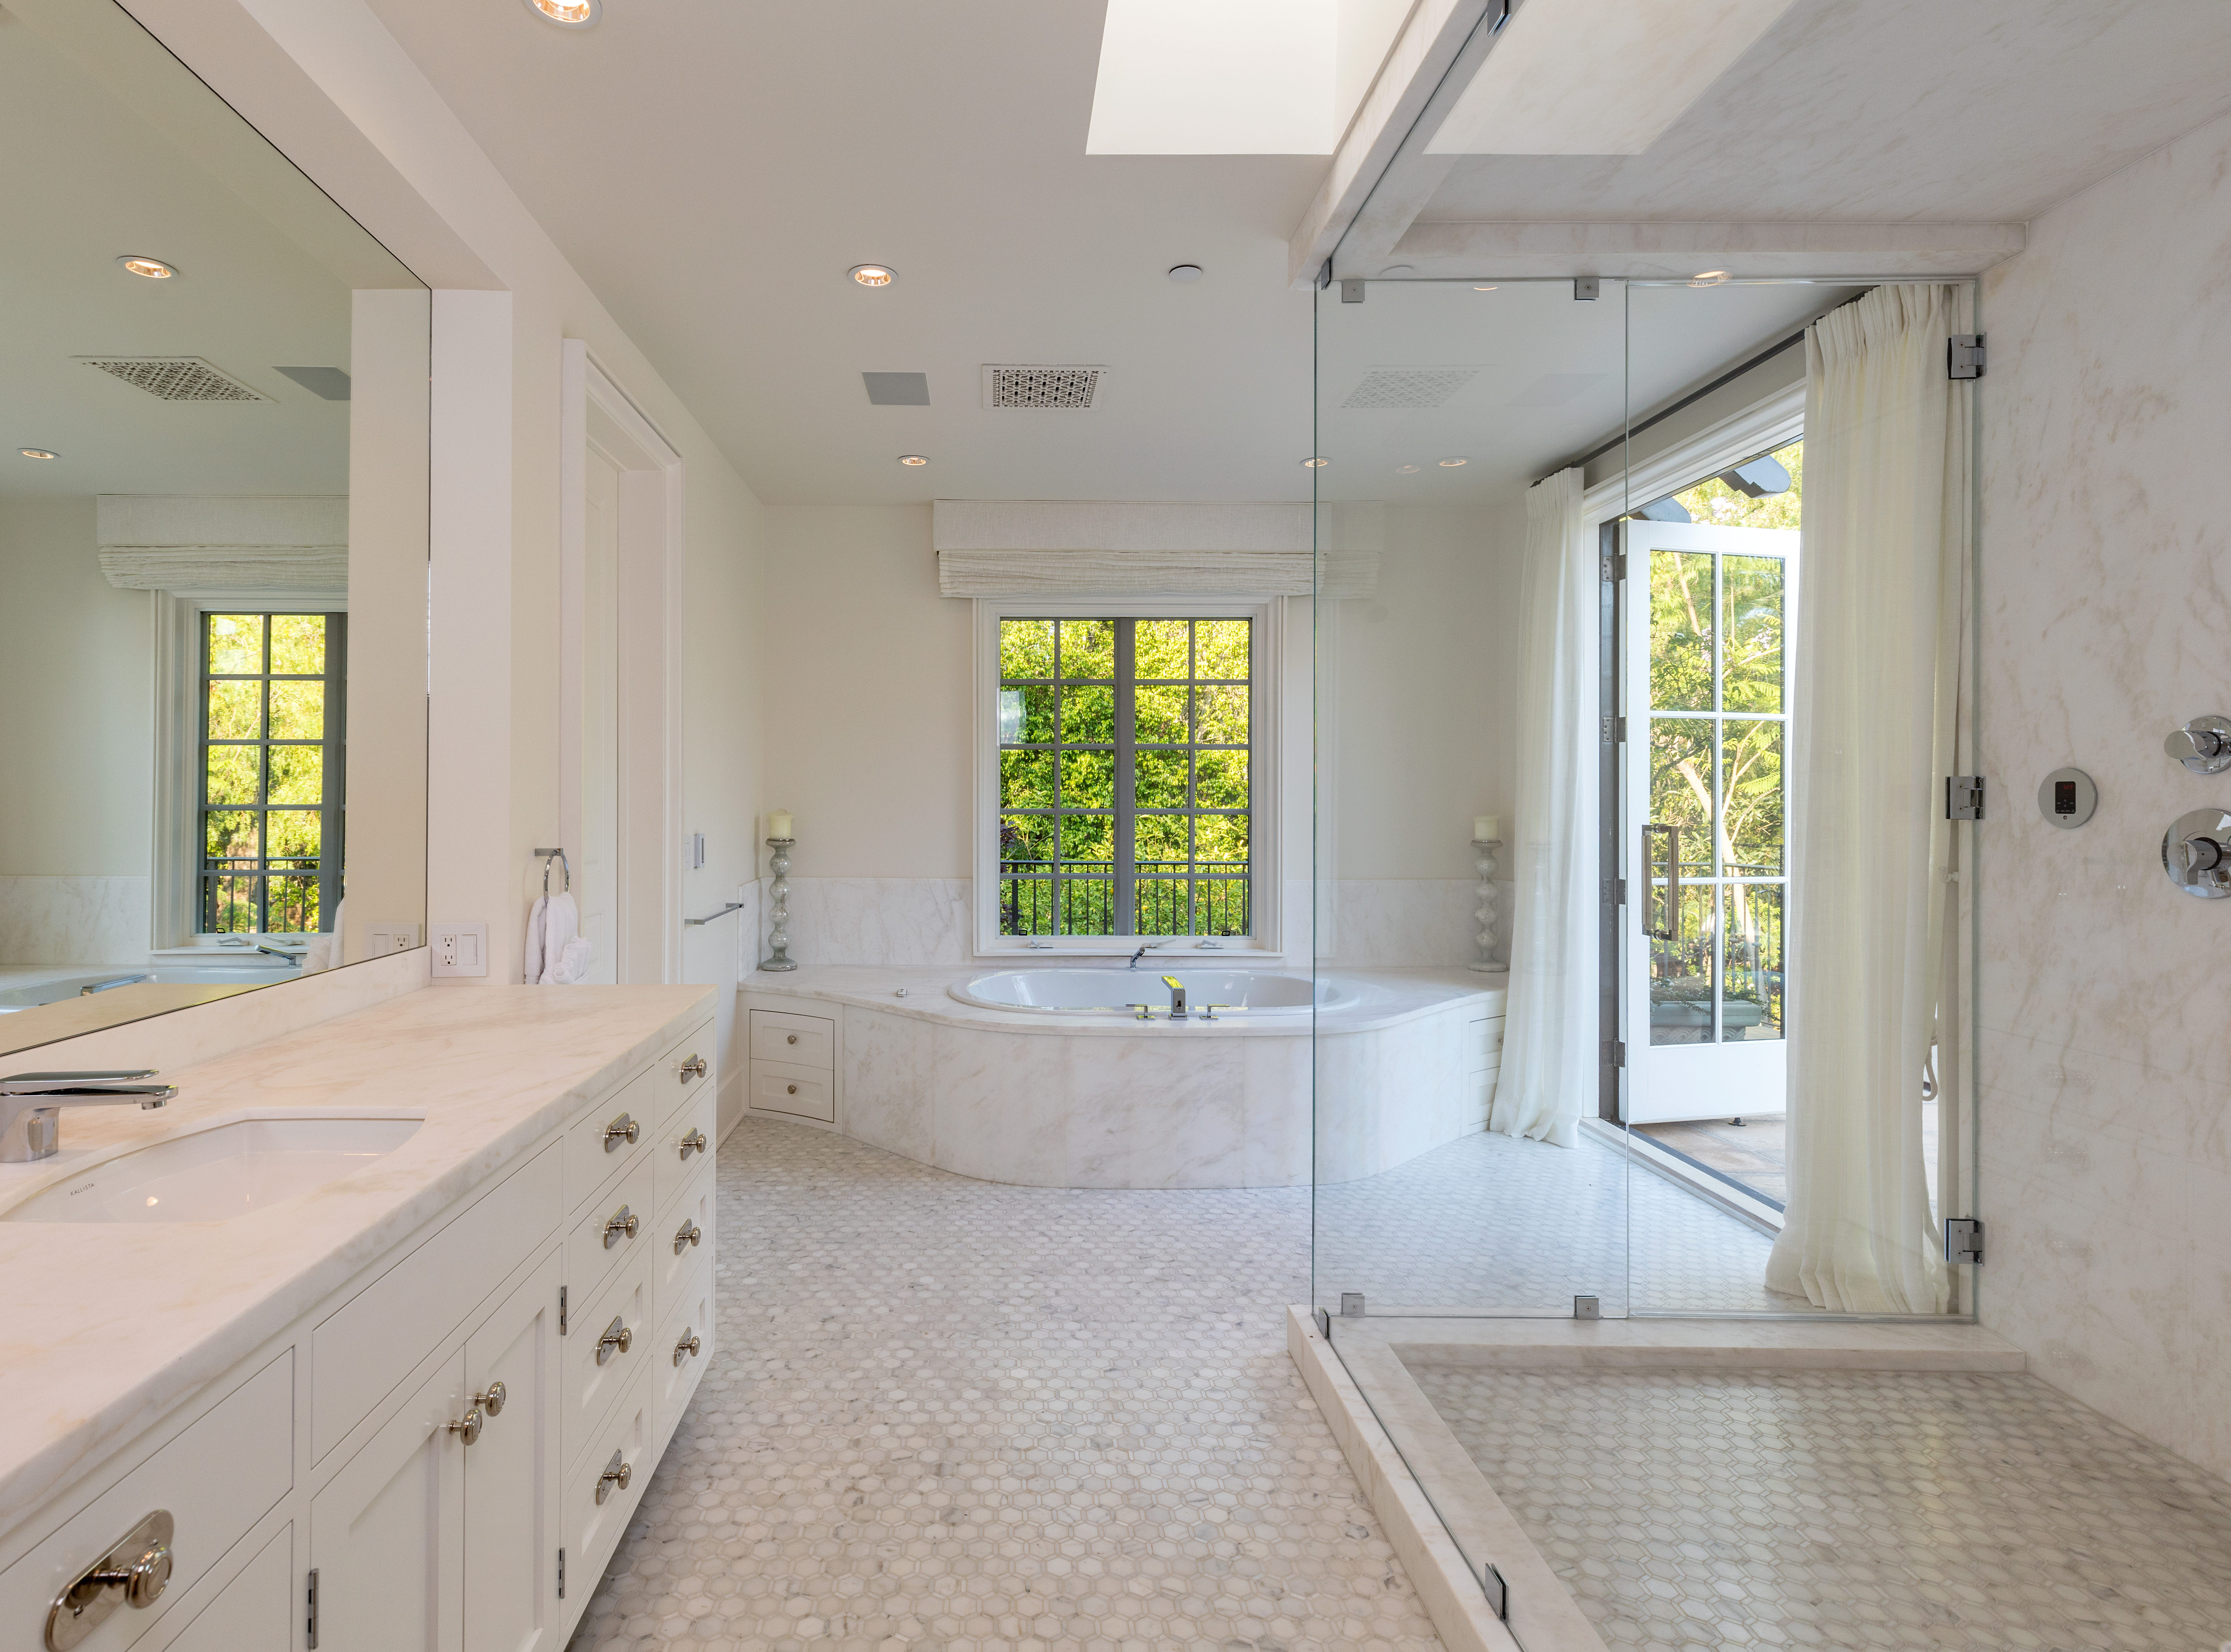 Built in 1968, the 5,800-square-foot property has eight bedrooms and fourteen baths, says TopTenRealEstateDeals.com.